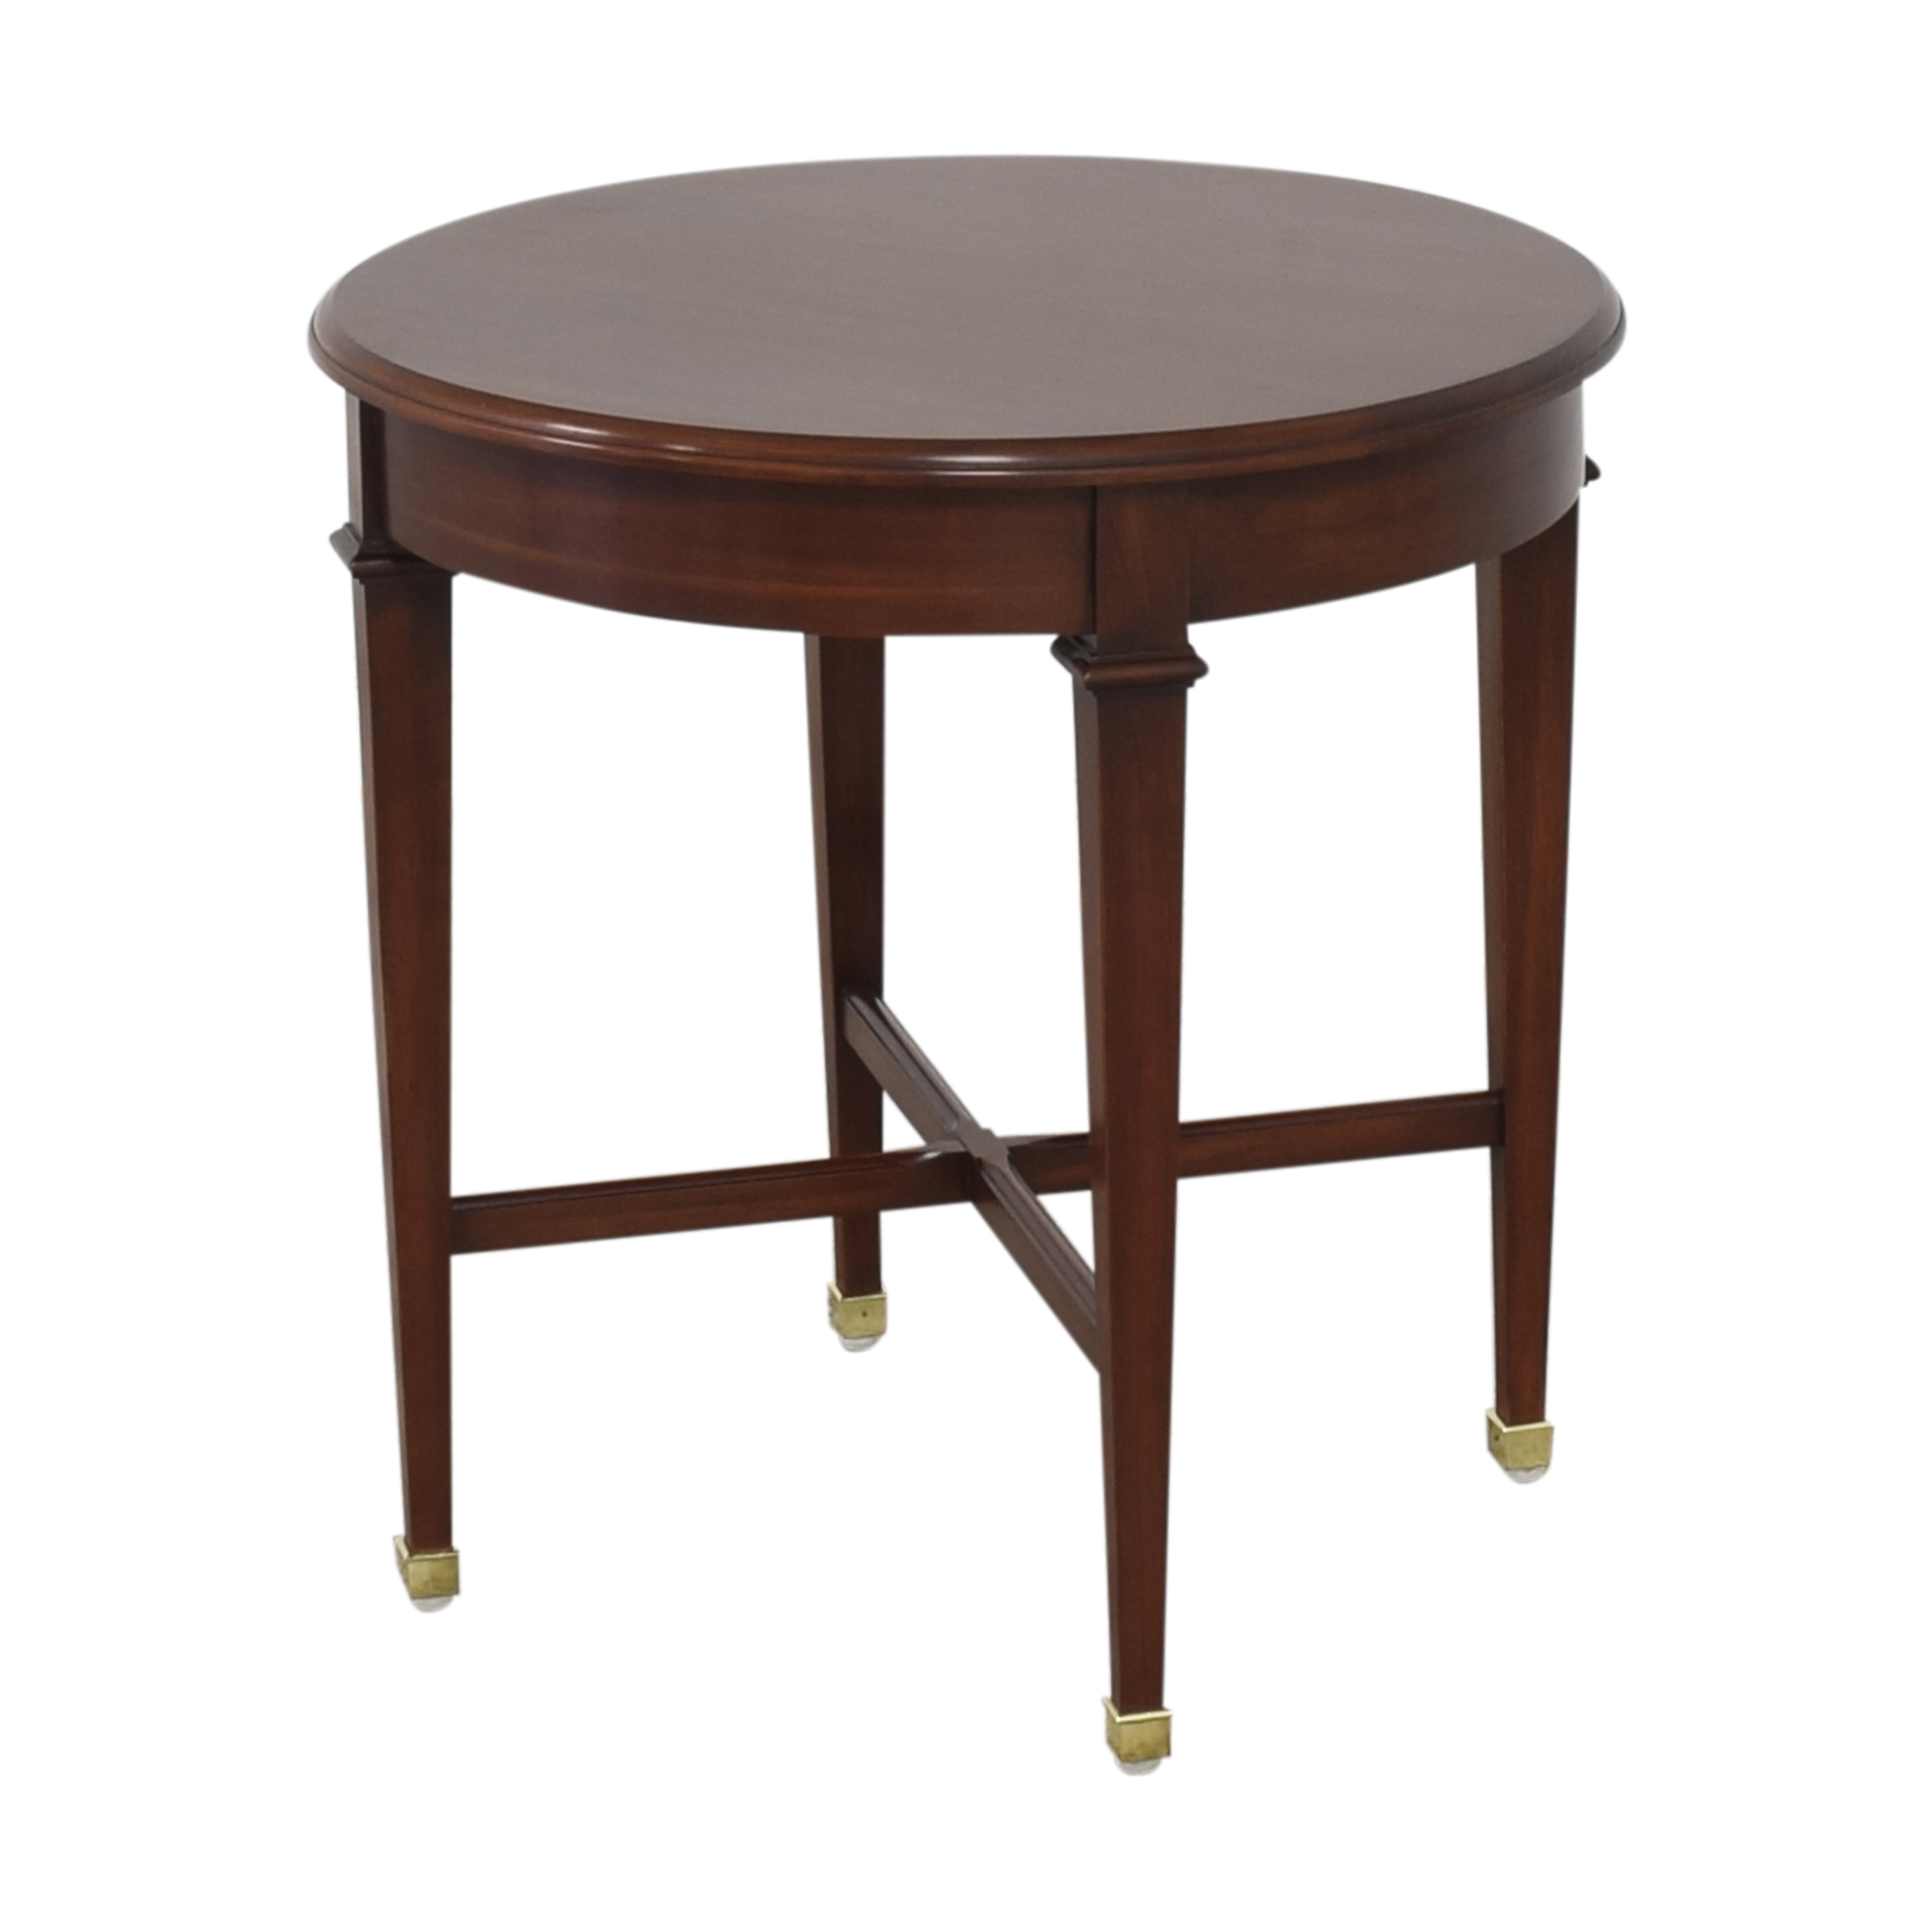 Harden Round End Table / End Tables